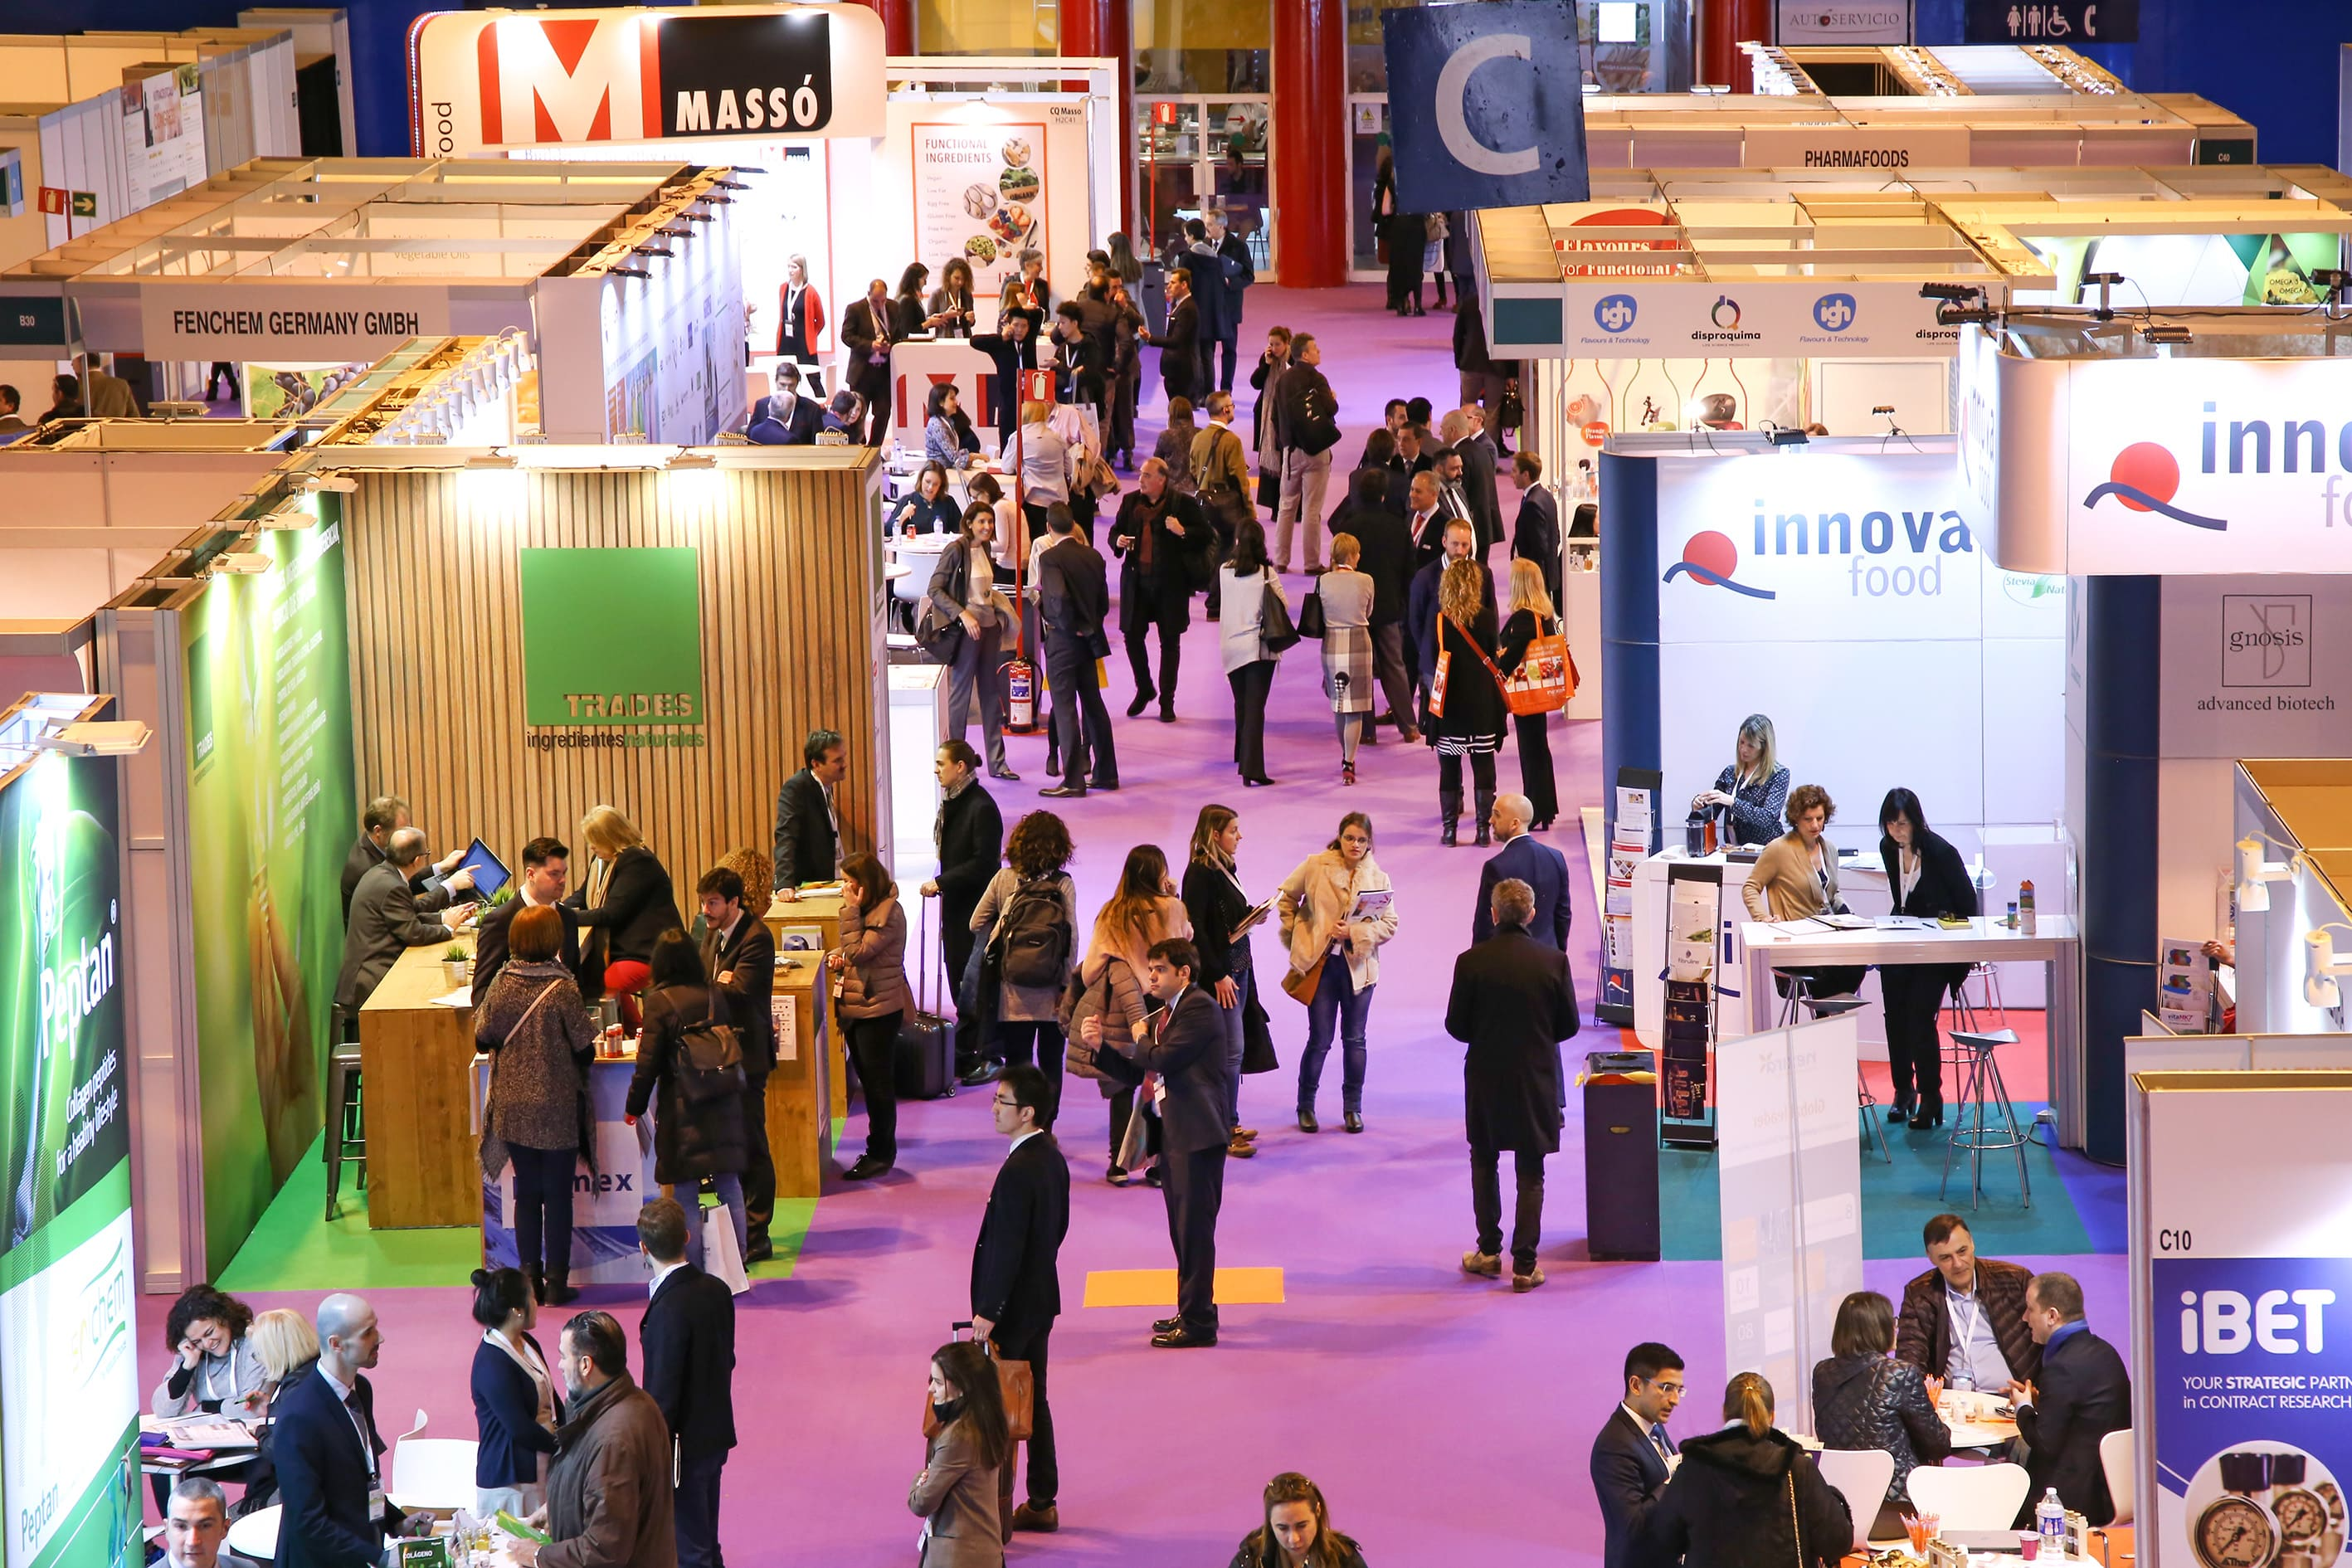 NUTRACEUTICALS Europe – Summit & Expo, the specialize event in functional ingredients and novel ingredients, which will celebrate its second edition on 14th and 15th February 2018, presents its Scientific Congress program.